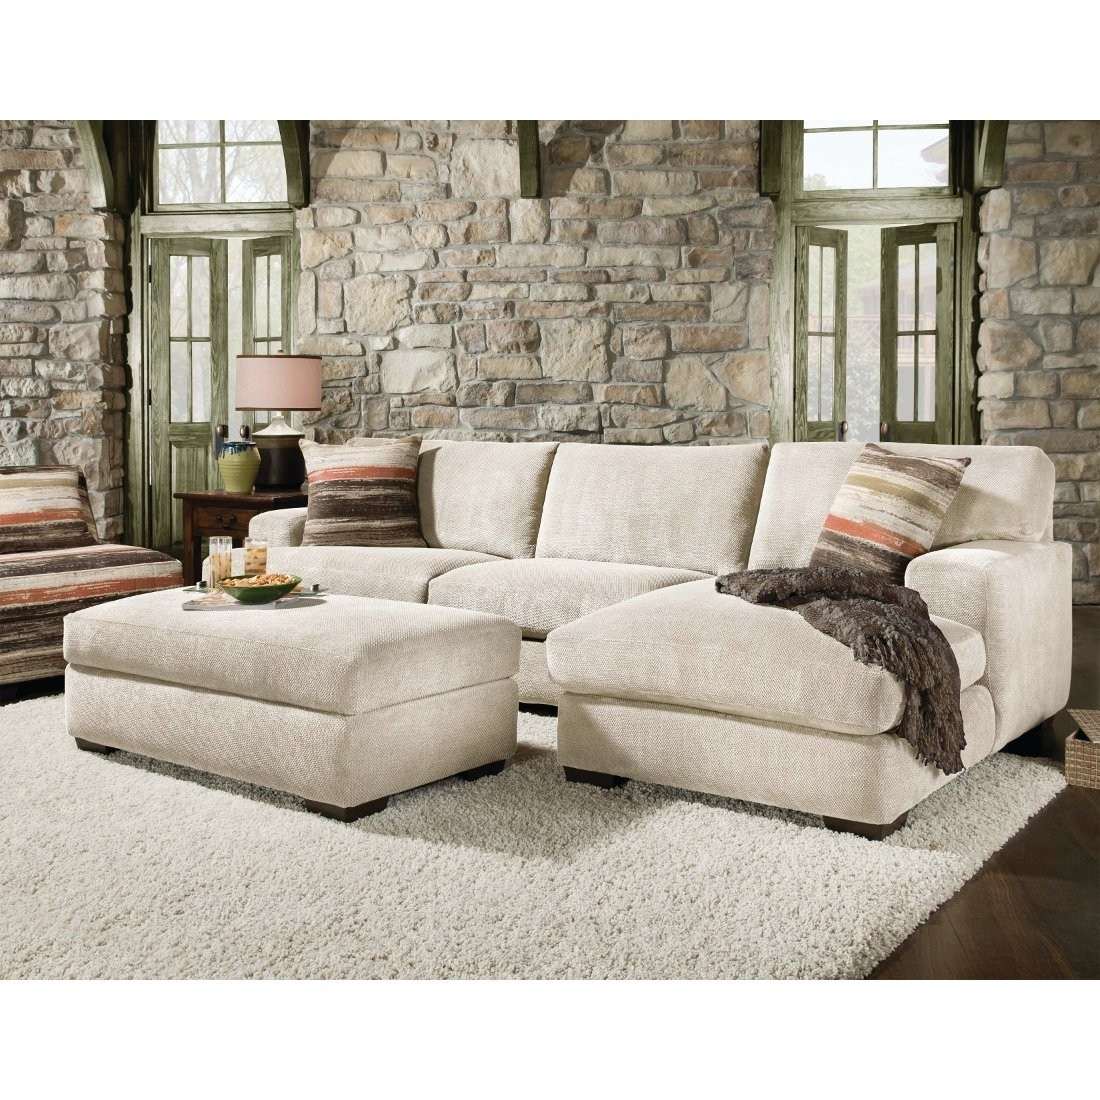 Cozy Extra Large Sectional Sofas With Chaise 66 For Amazon Sectional Throughout Sectional Sofas At Amazon (View 8 of 15)